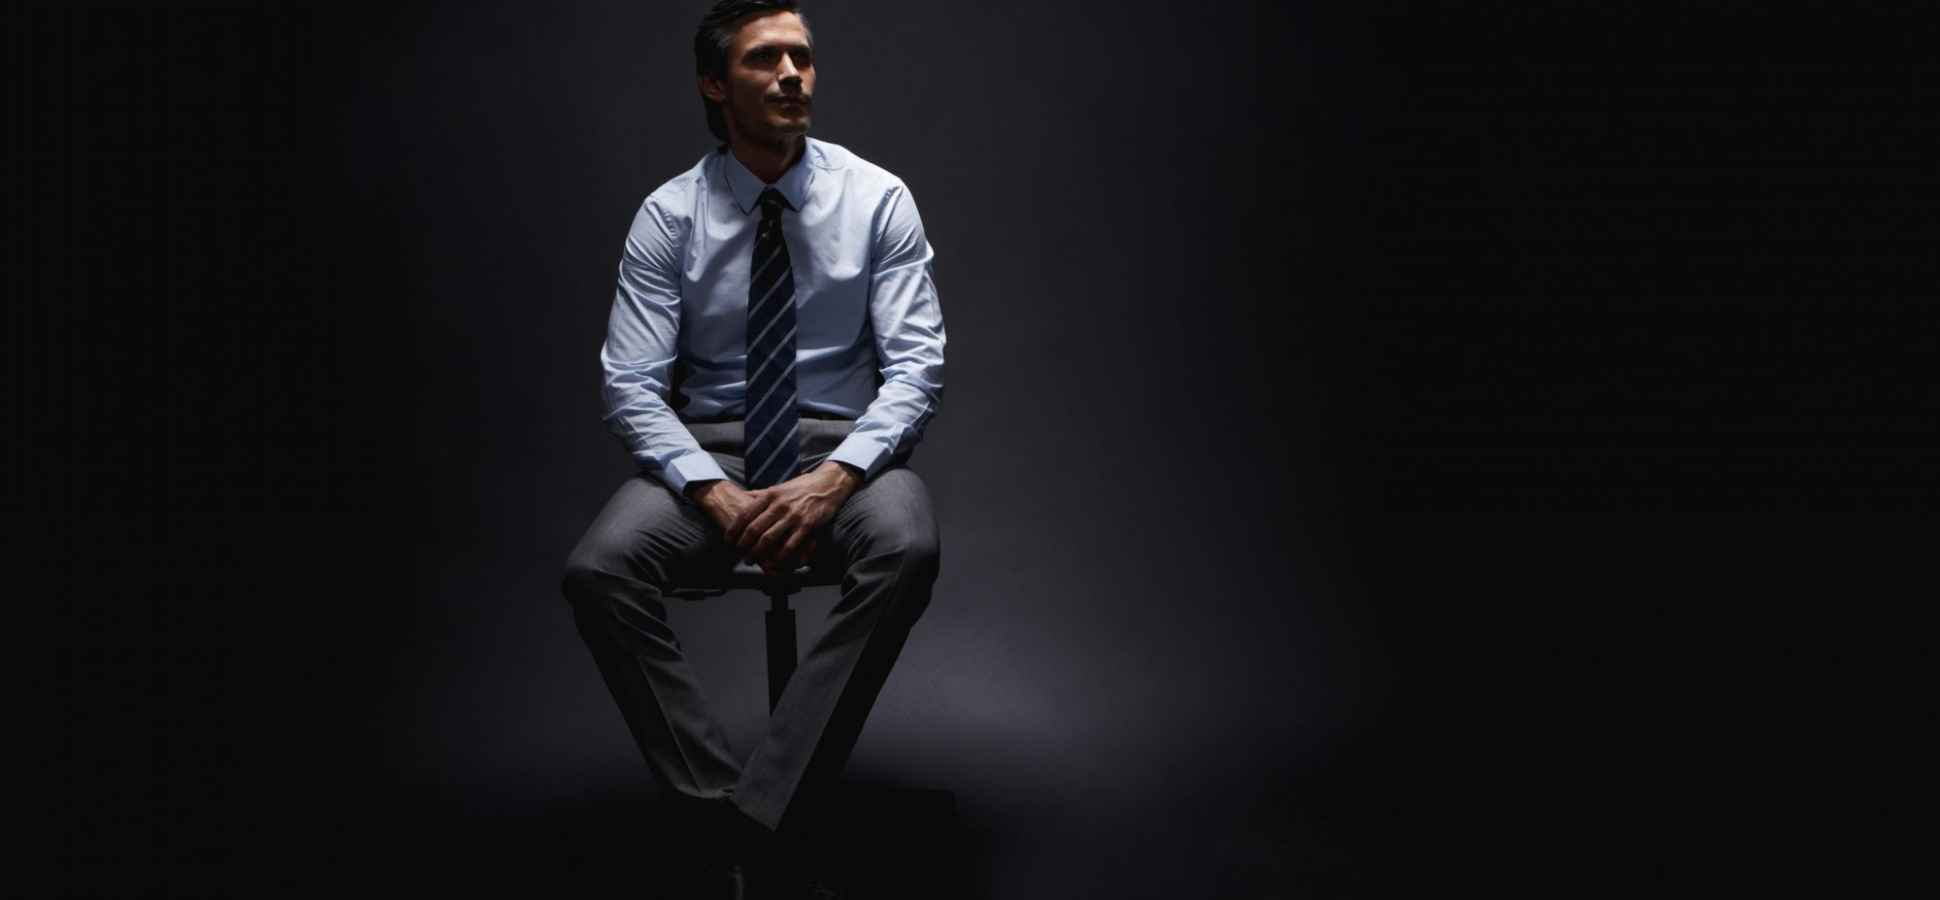 3 Powerful Leadership Lessons From Introverted CEOs